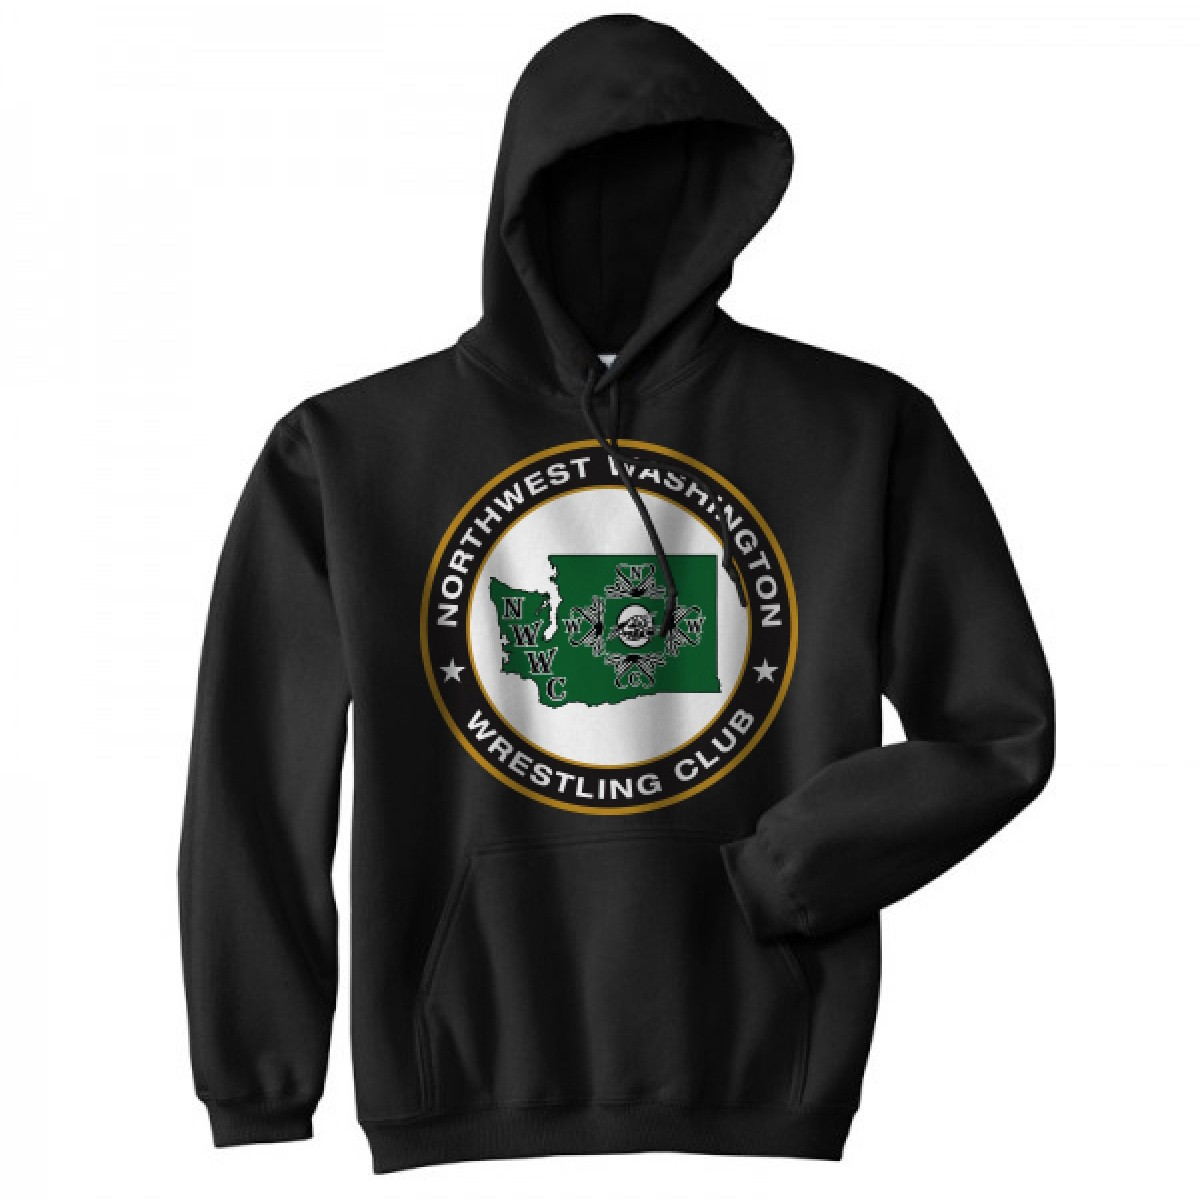 NWWC Black Hoodie With Green Logo-Black-L